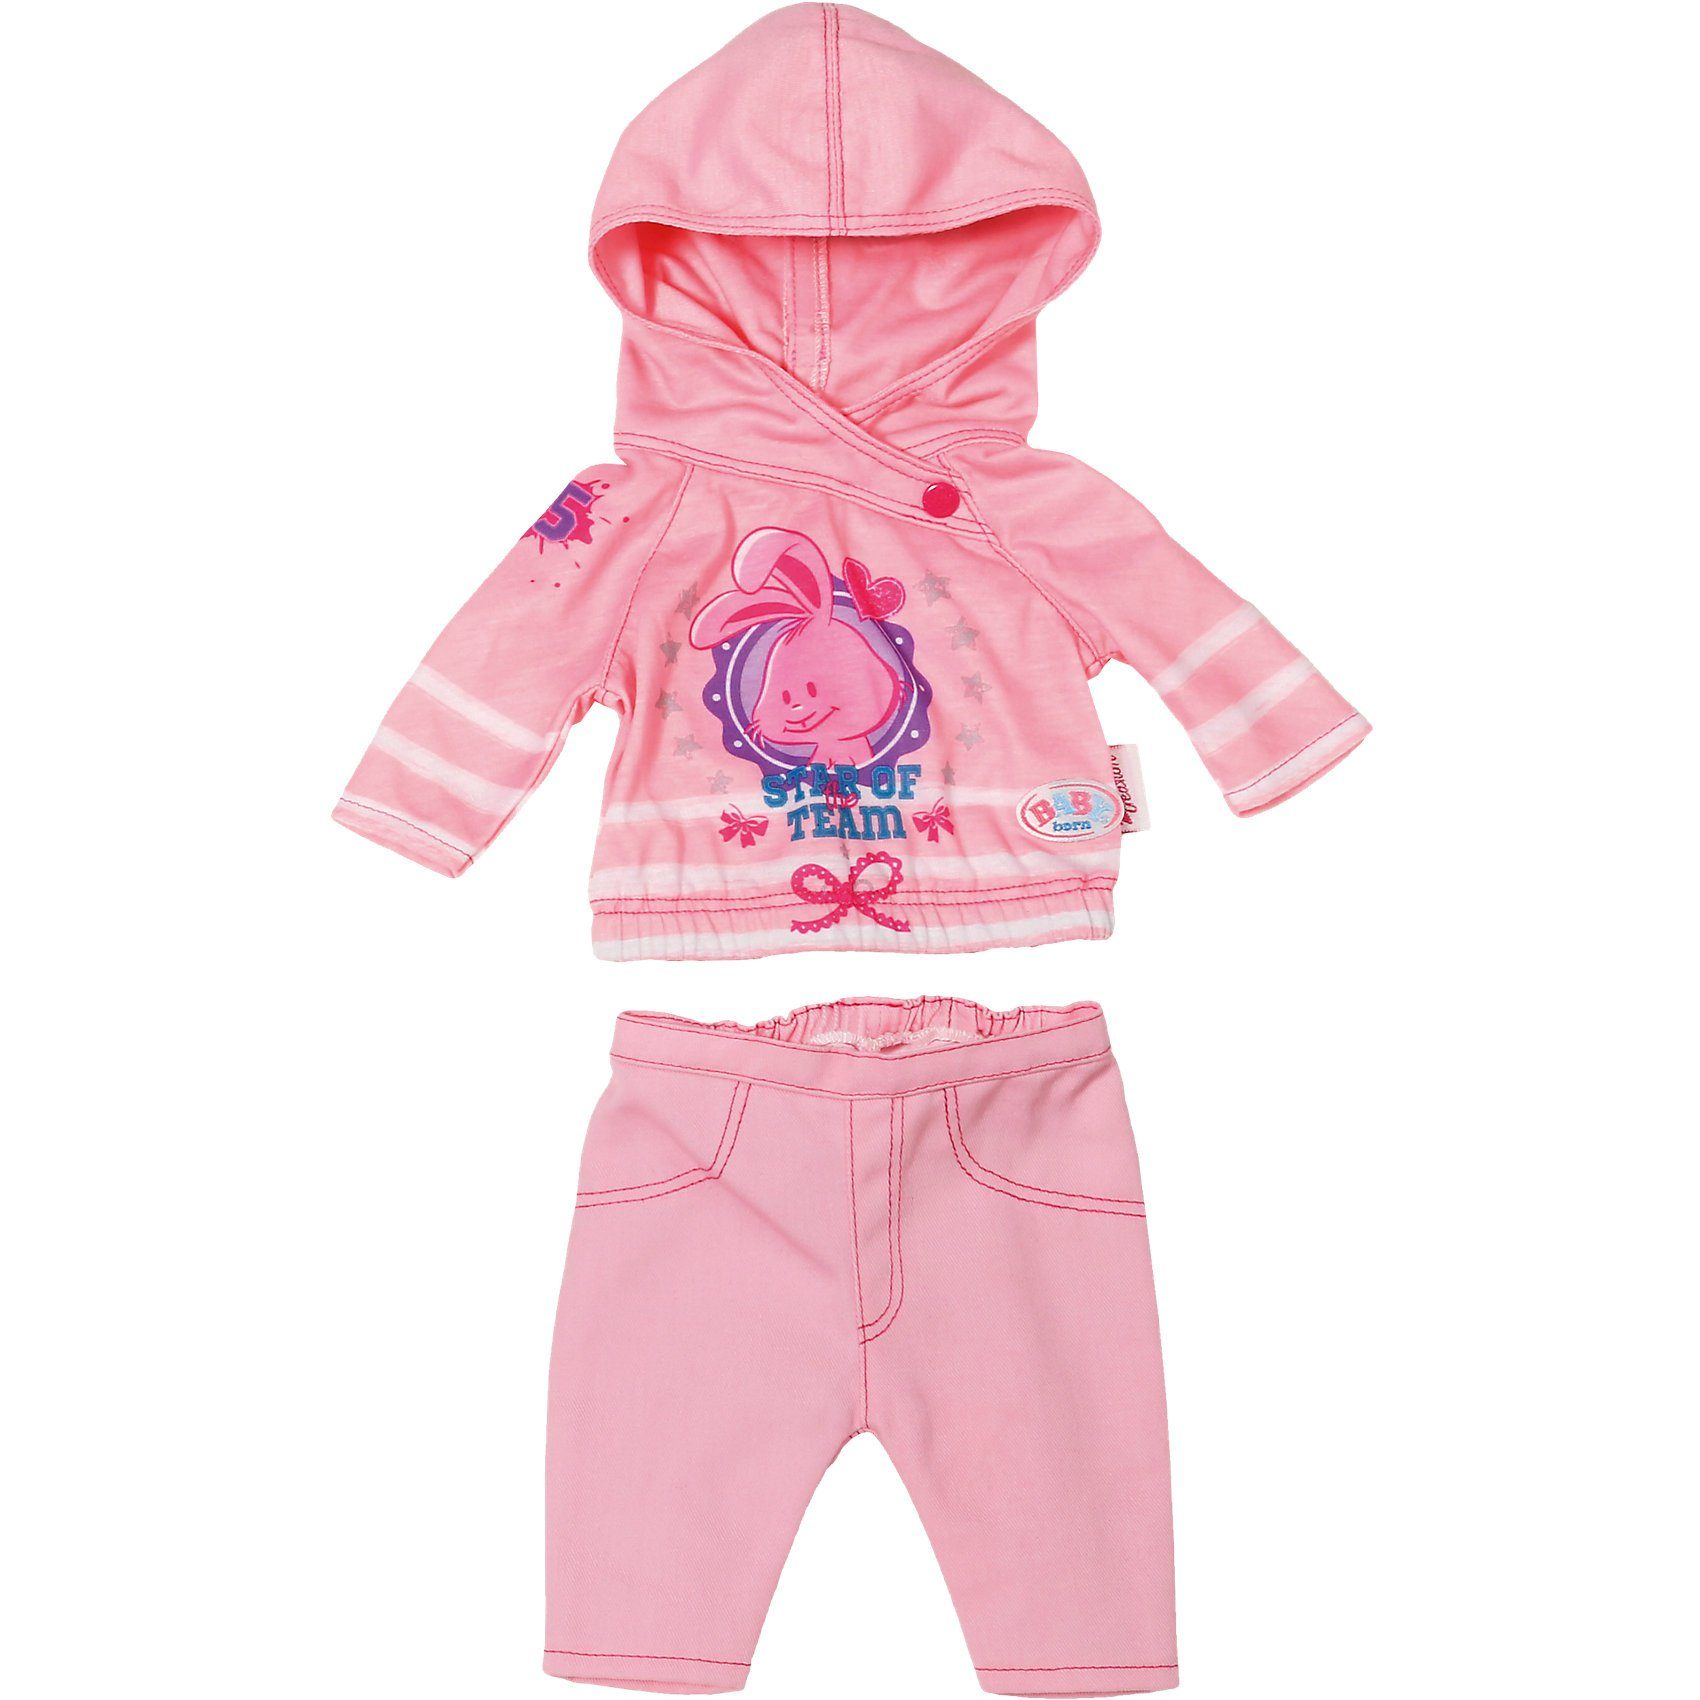 Zapf Creation BABY born® Puppenkleidung Freizeit Kollektion Rosa, 43 cm